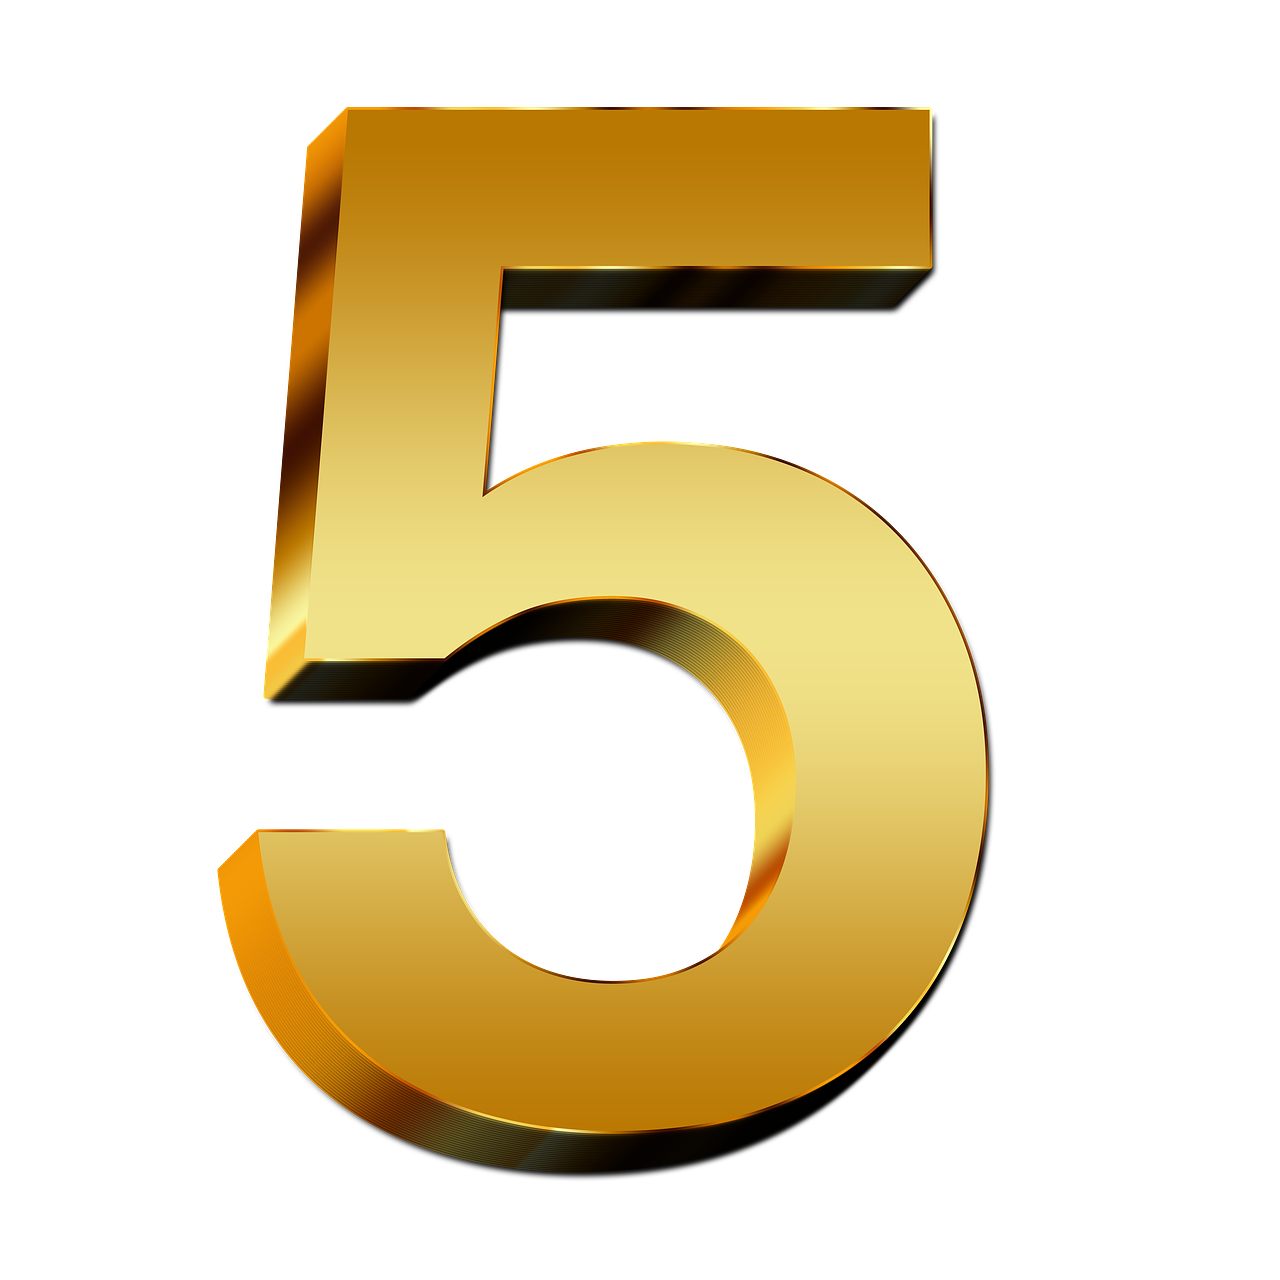 Number 1 clipart numeral.  to numbers png